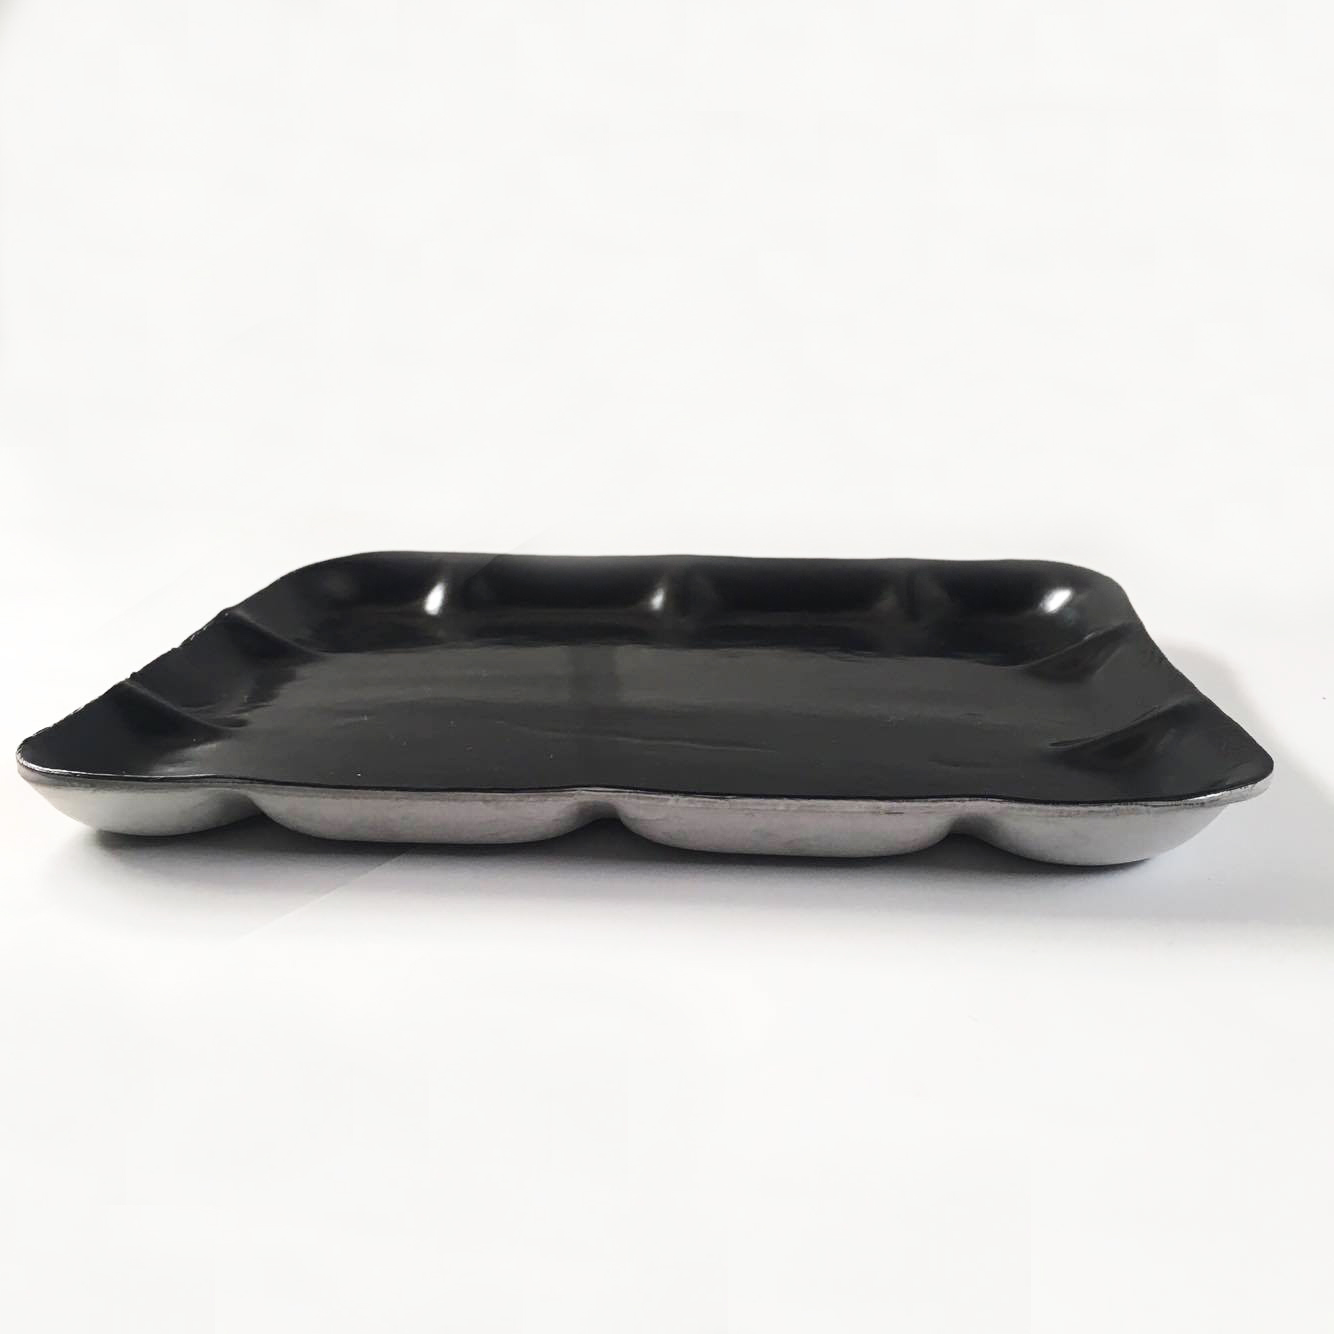 "Foam Tray Black Deep 8"" x 7"""